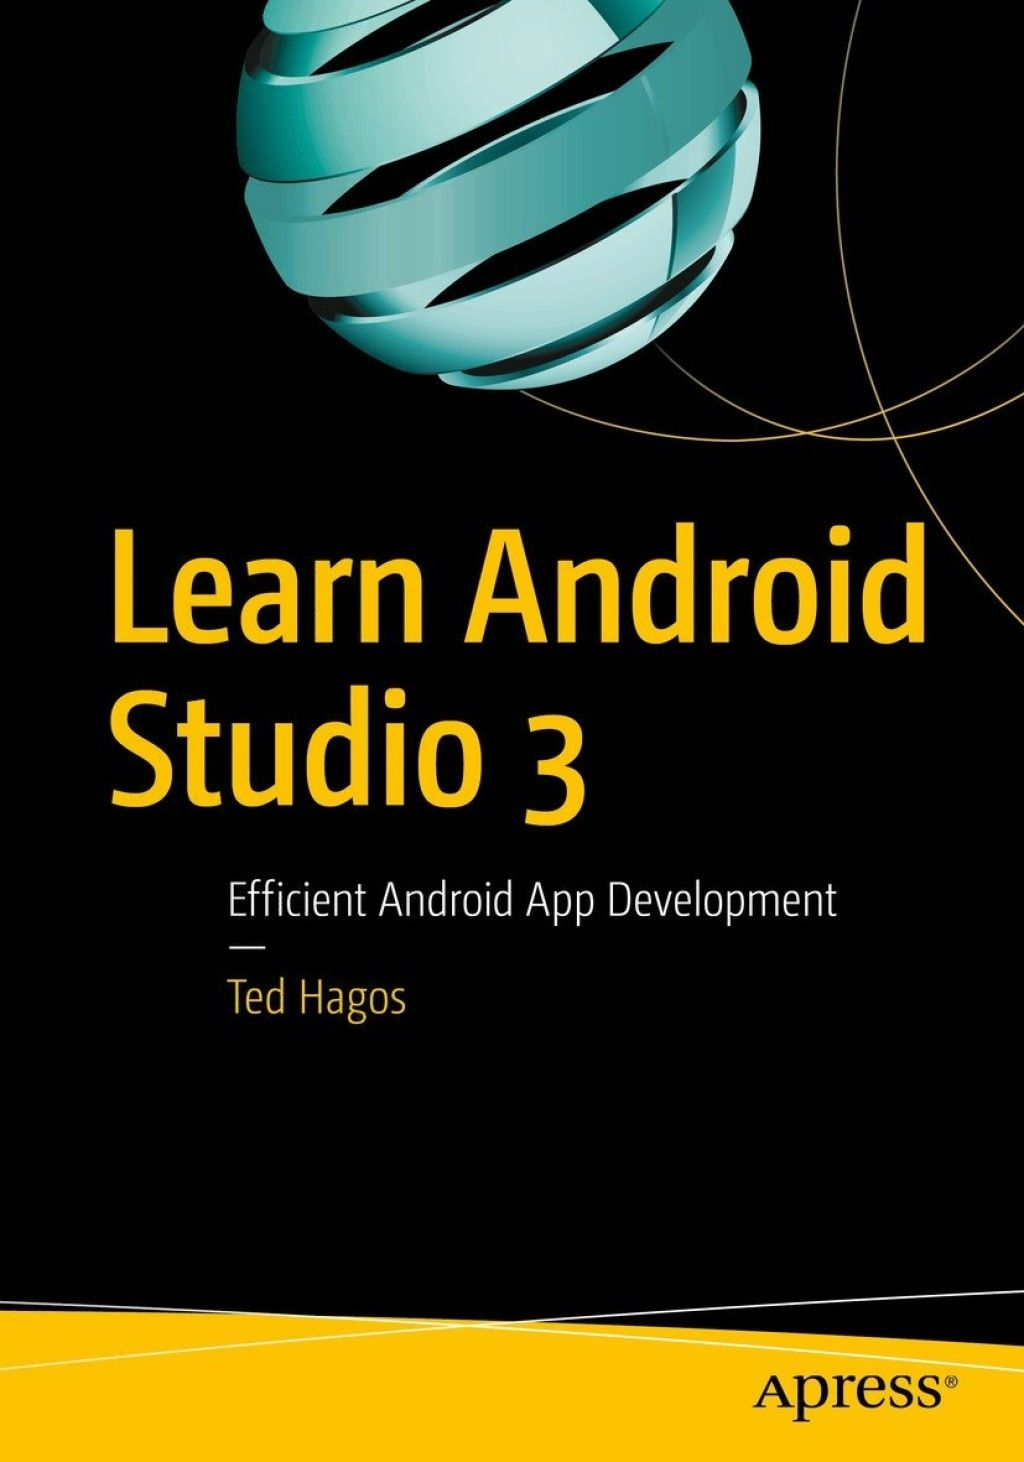 Libros Android Learn Android Studio 3 Ebook Products Android Studio